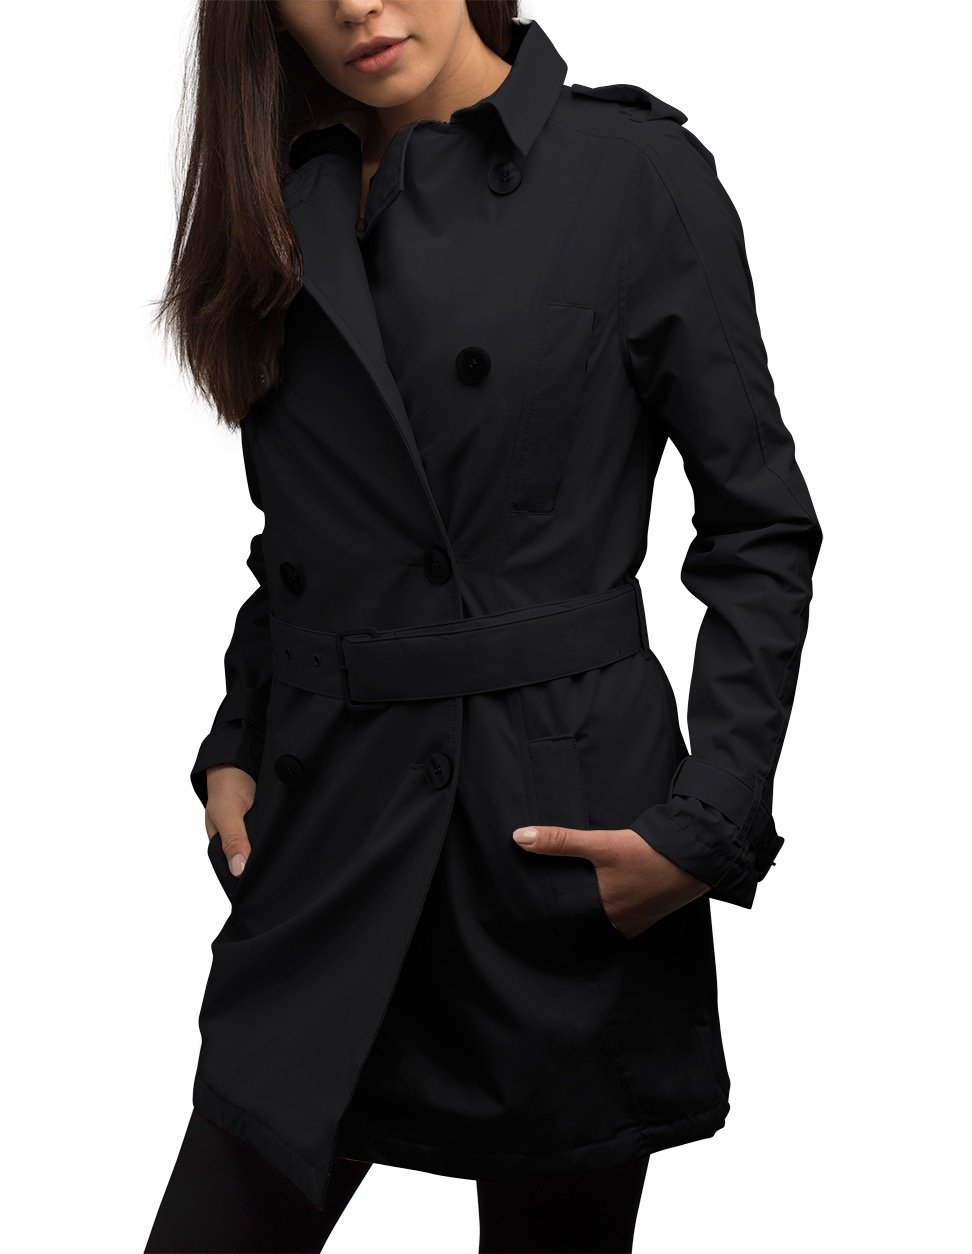 SCOTTeVEST Women's Trench Coat - 18 Pockets - Travel Clothing BLK S